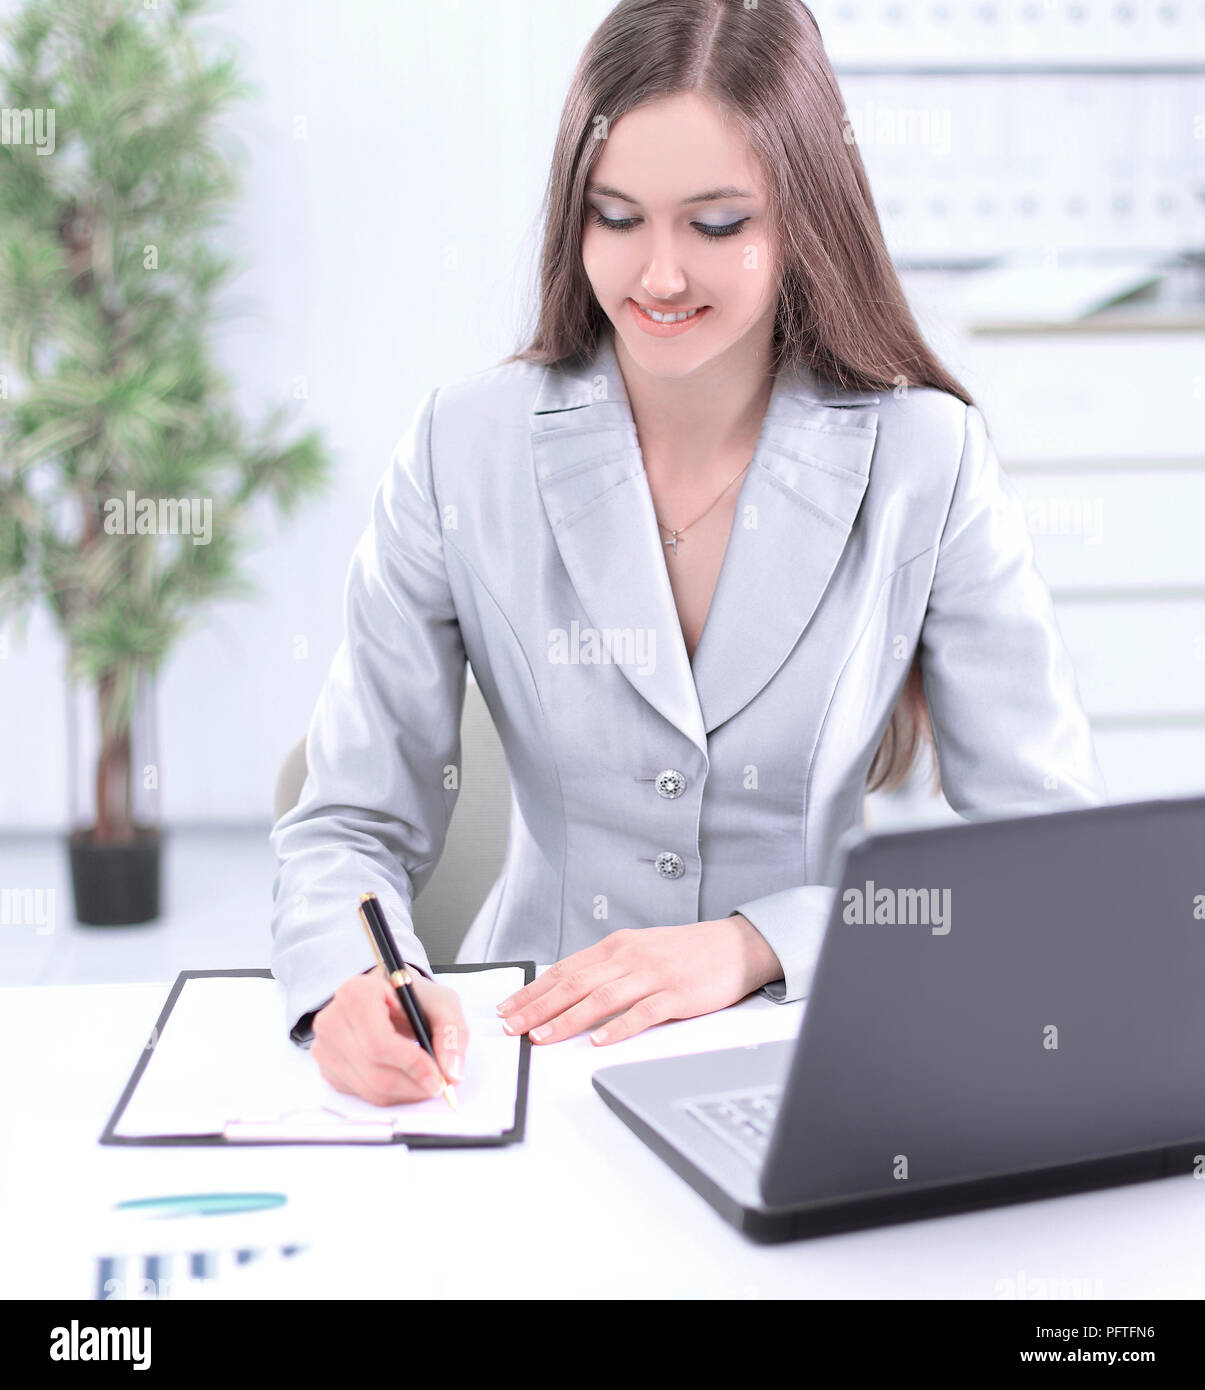 woman assistant making a record on a sheet of paper. - Stock Image